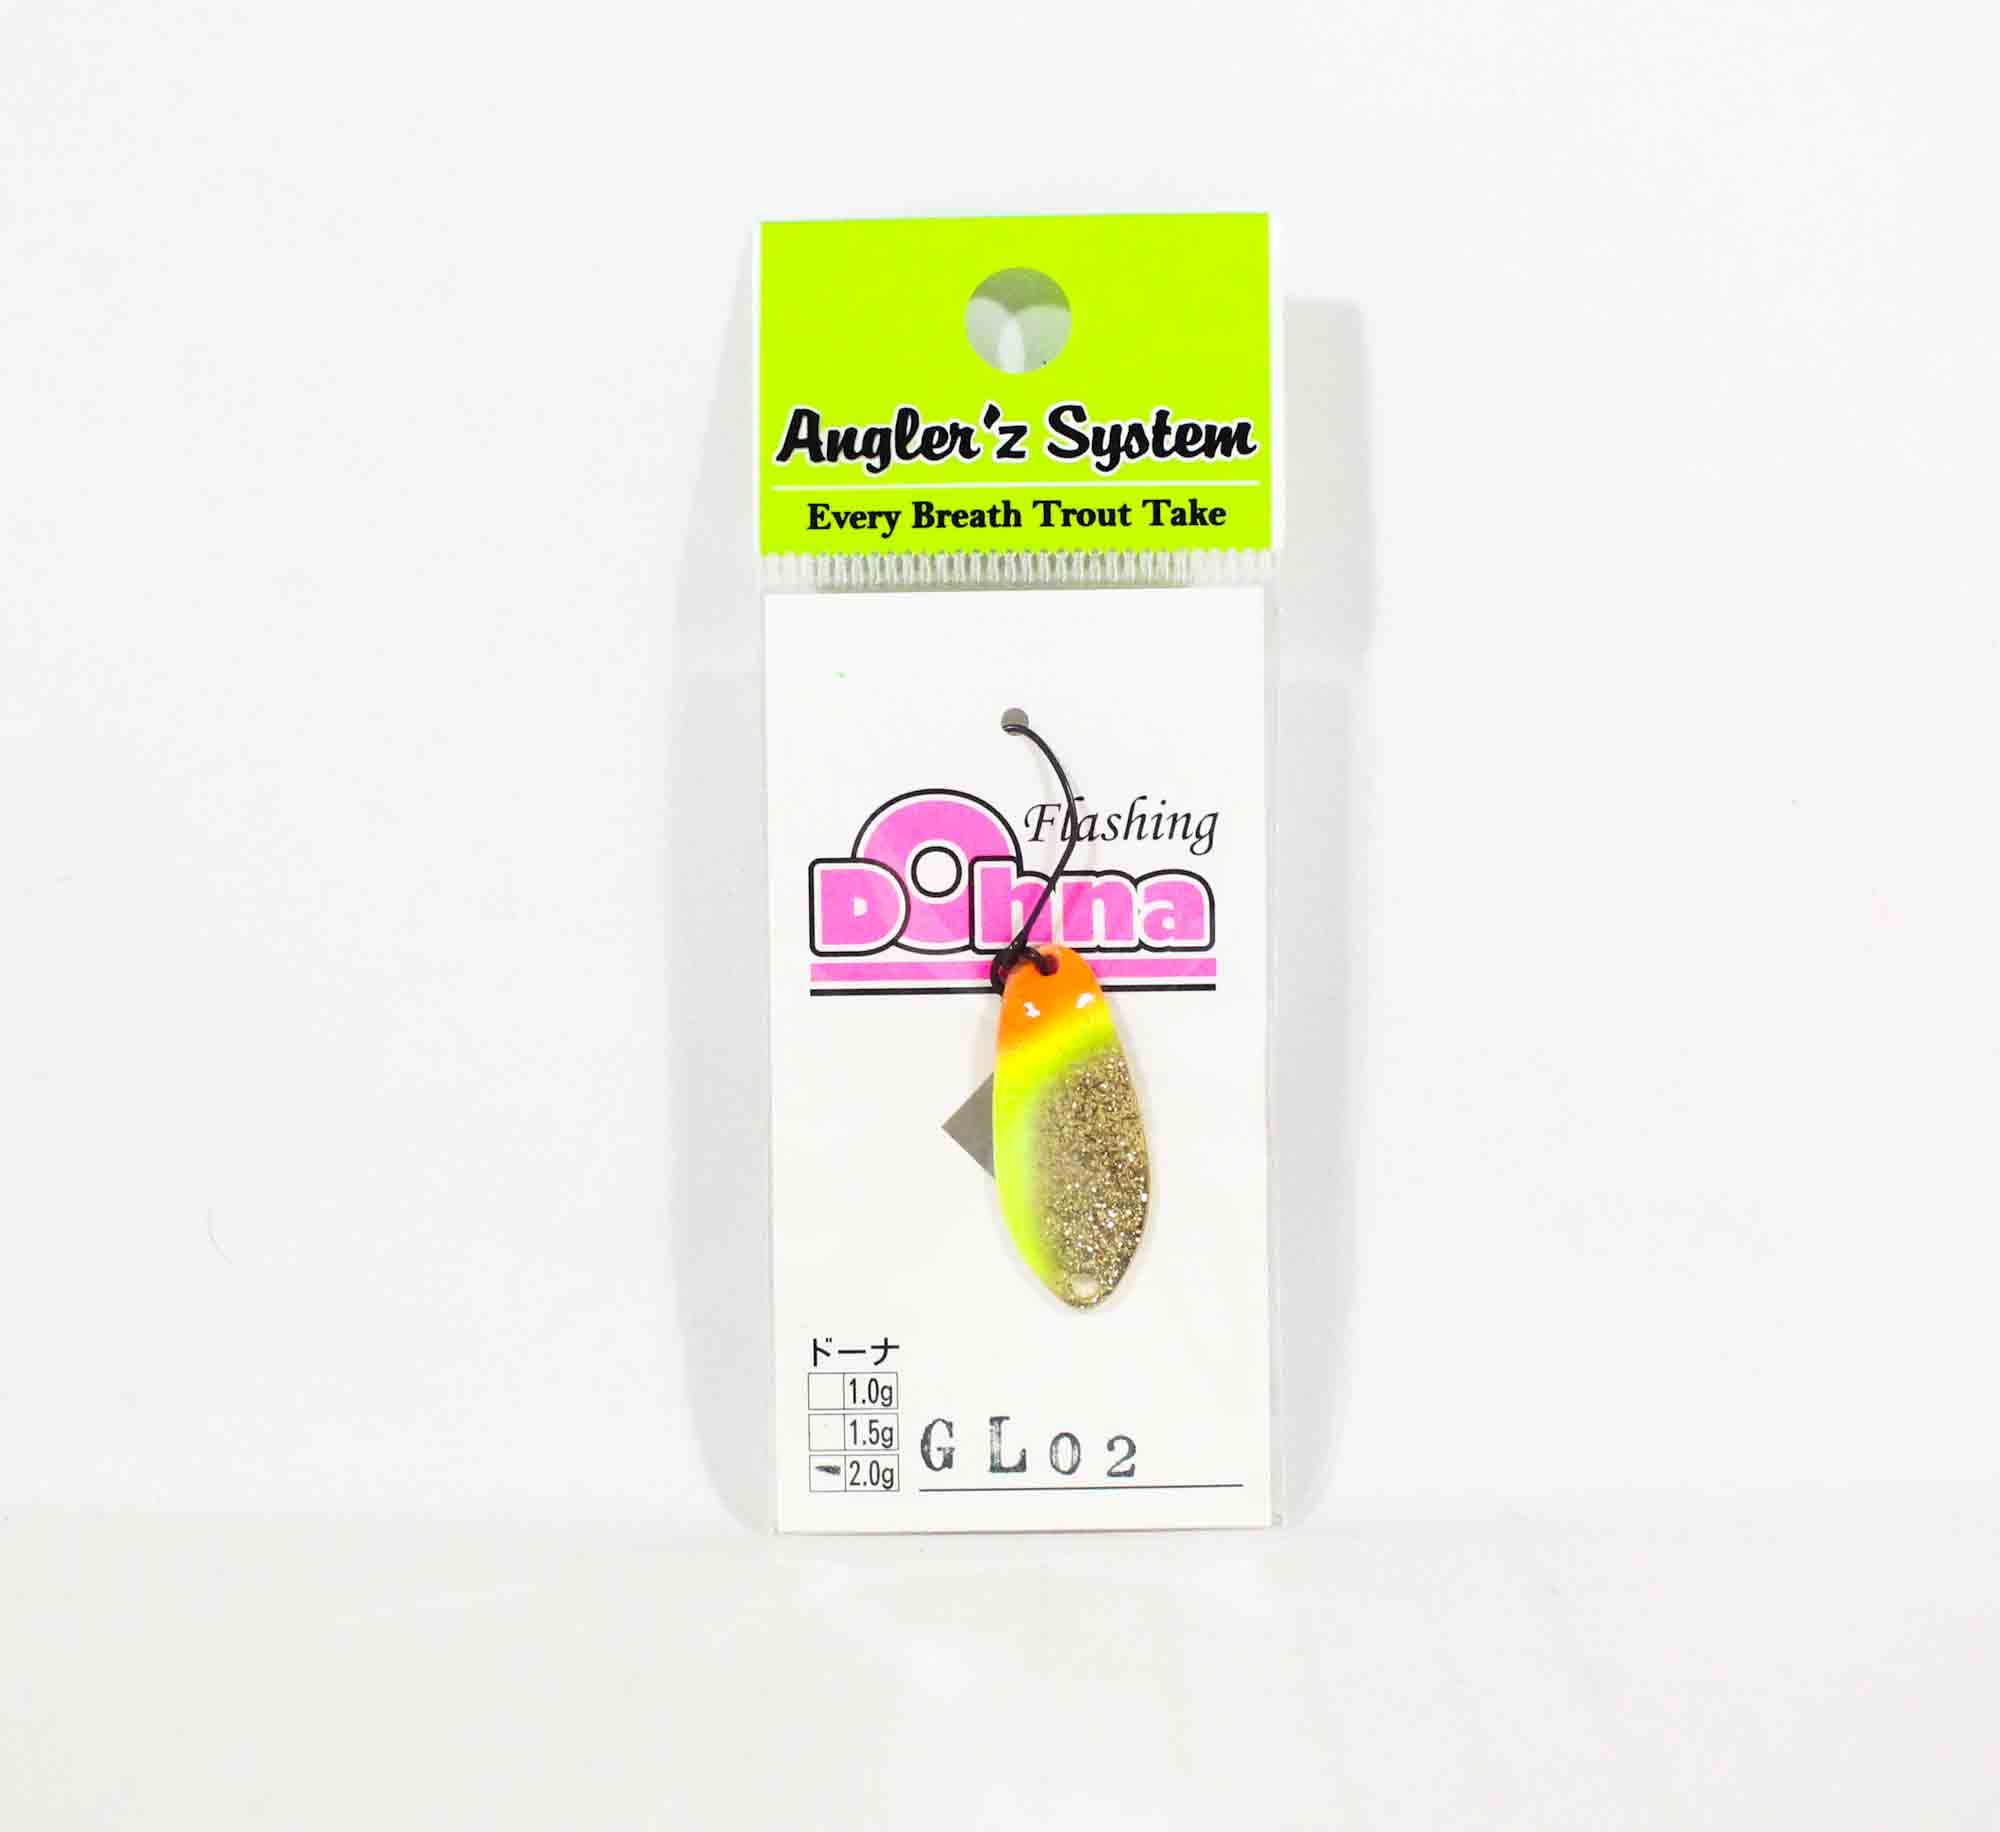 Anglers System Antem Dohna 2.0 grams Spoon Sinking Lure GL02 (6437)